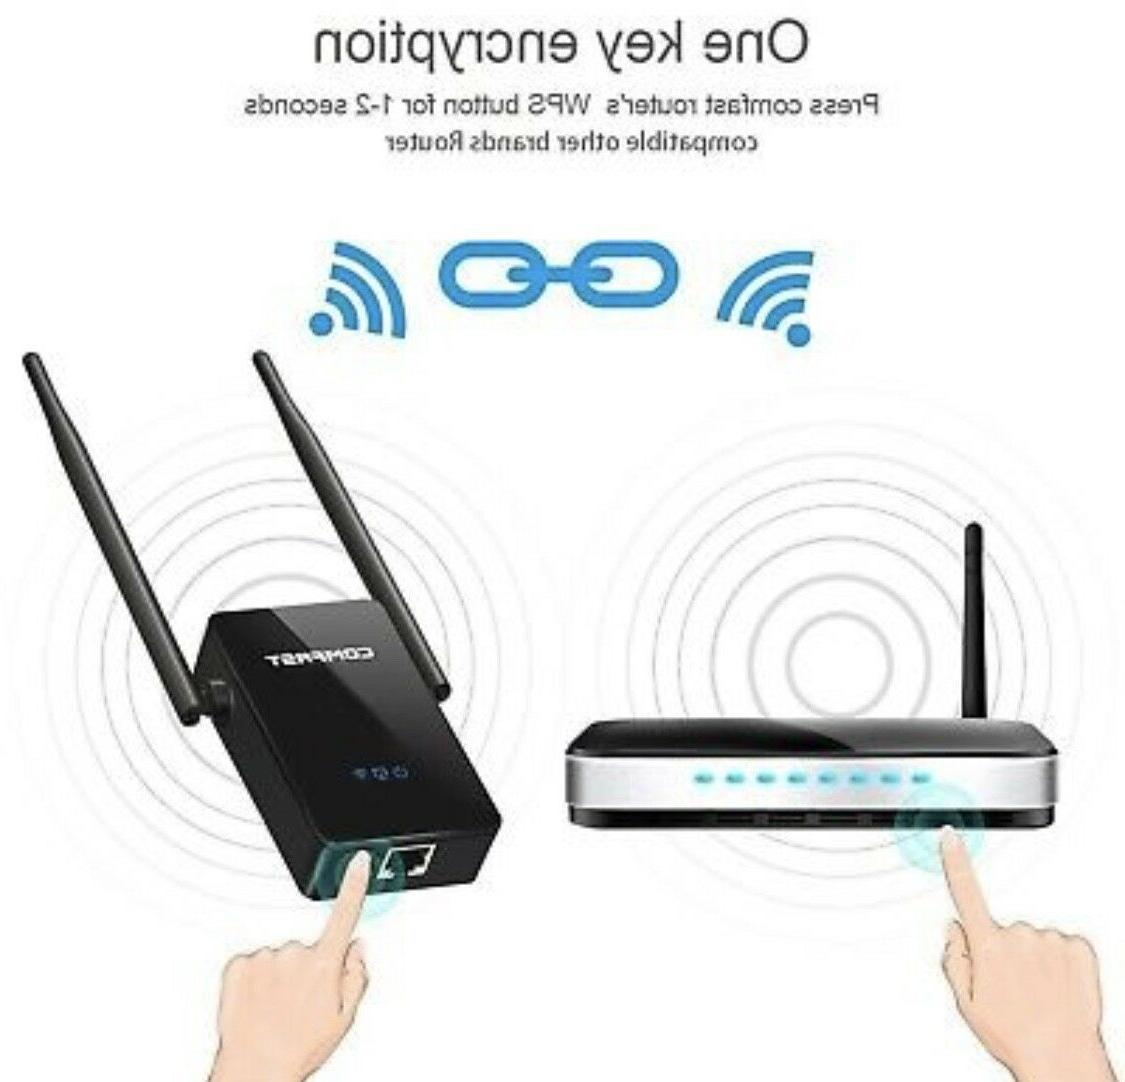 WiFi Extender Router